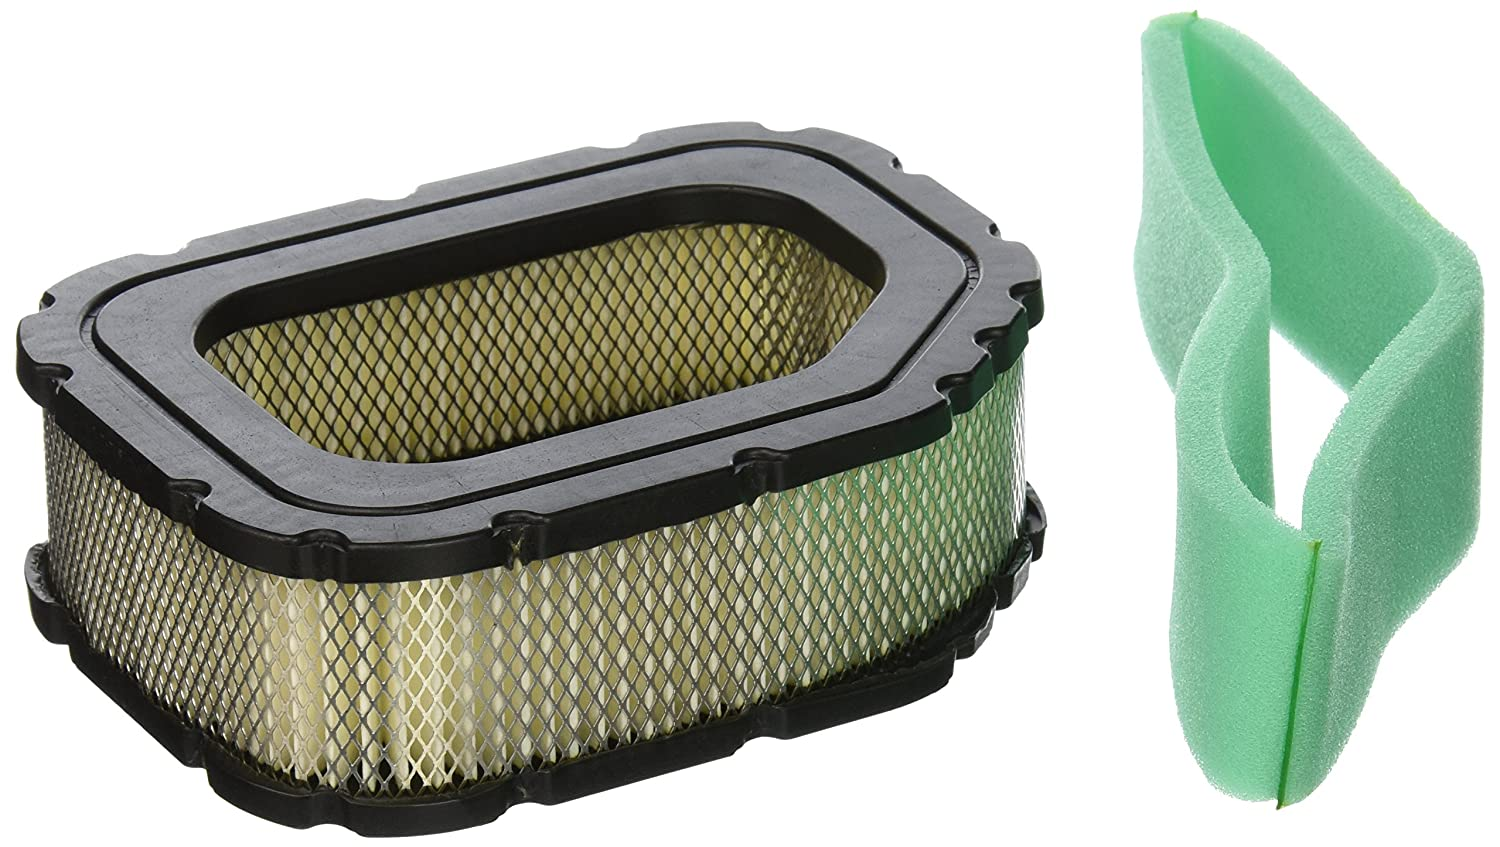 Maxpower 334390 Air Filter and Pre-Cleaner for Kohler Courage 32-083-03S/32-883-03S1